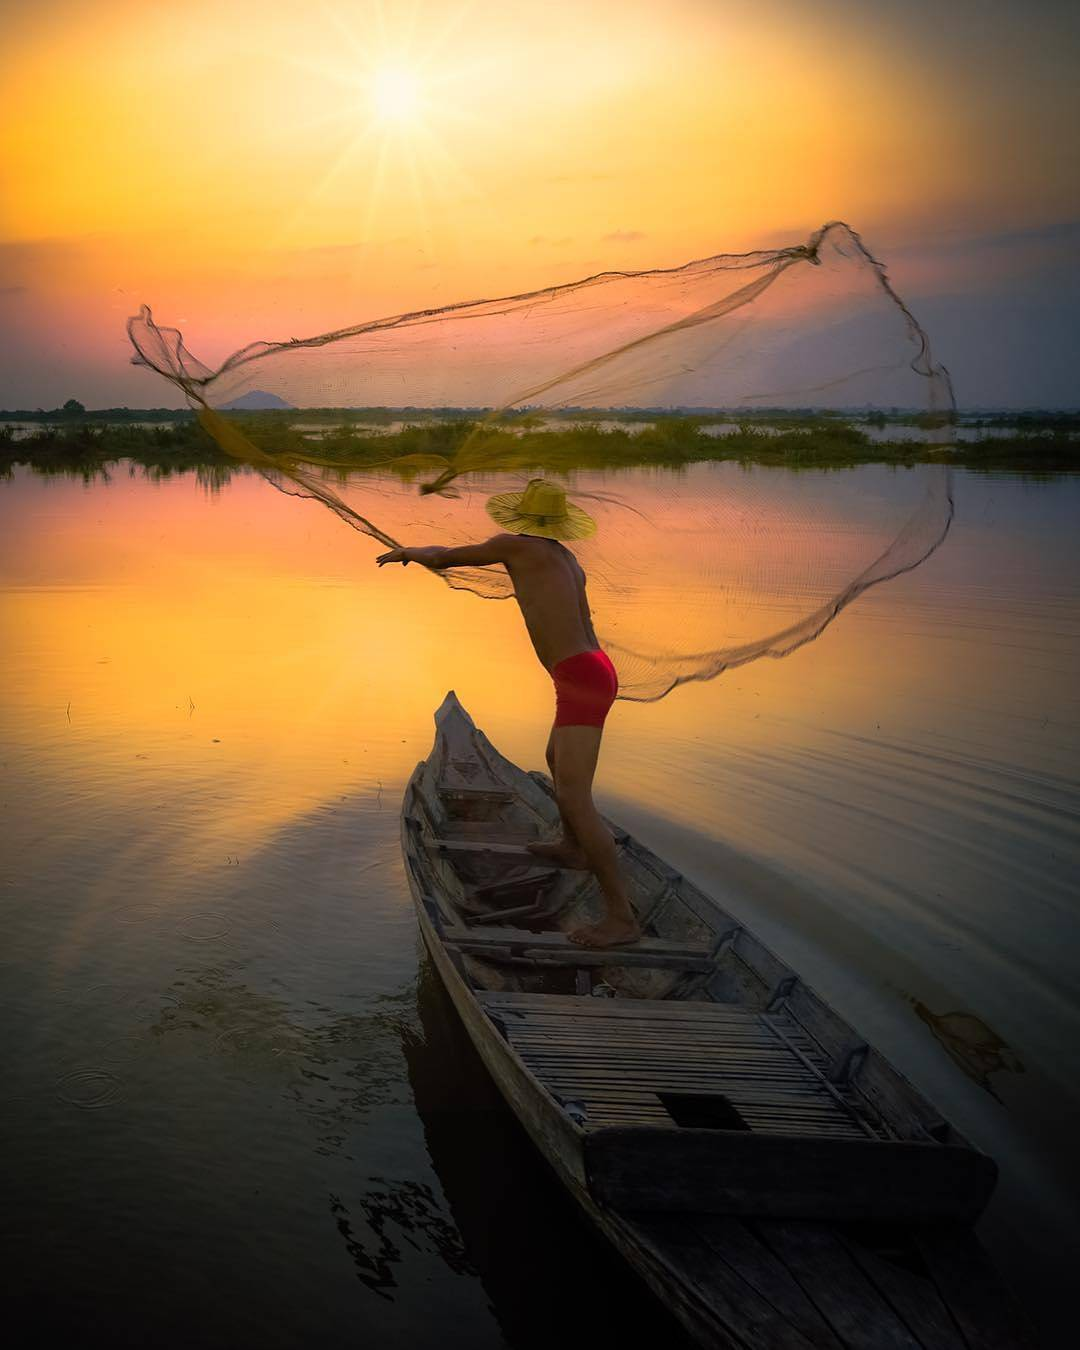 The great lake of Tonle Sap is a valuable source of life